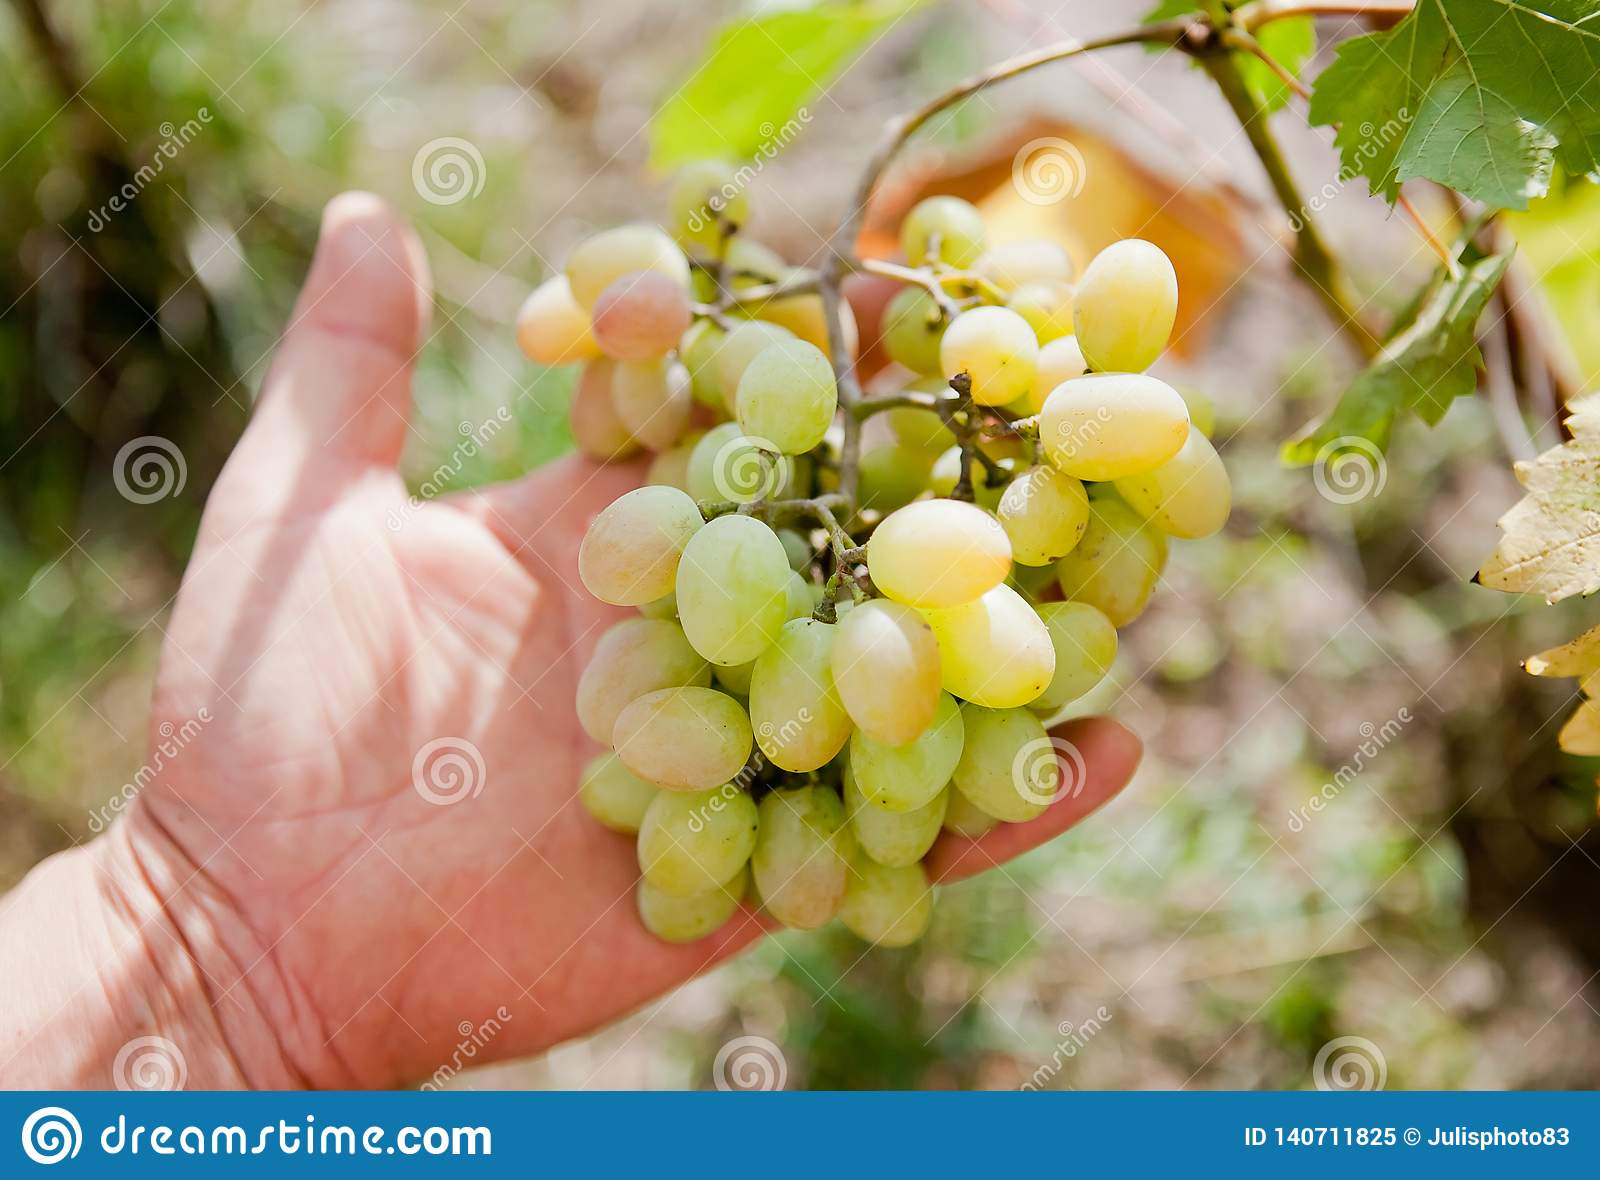 Branch of white grapes in hand